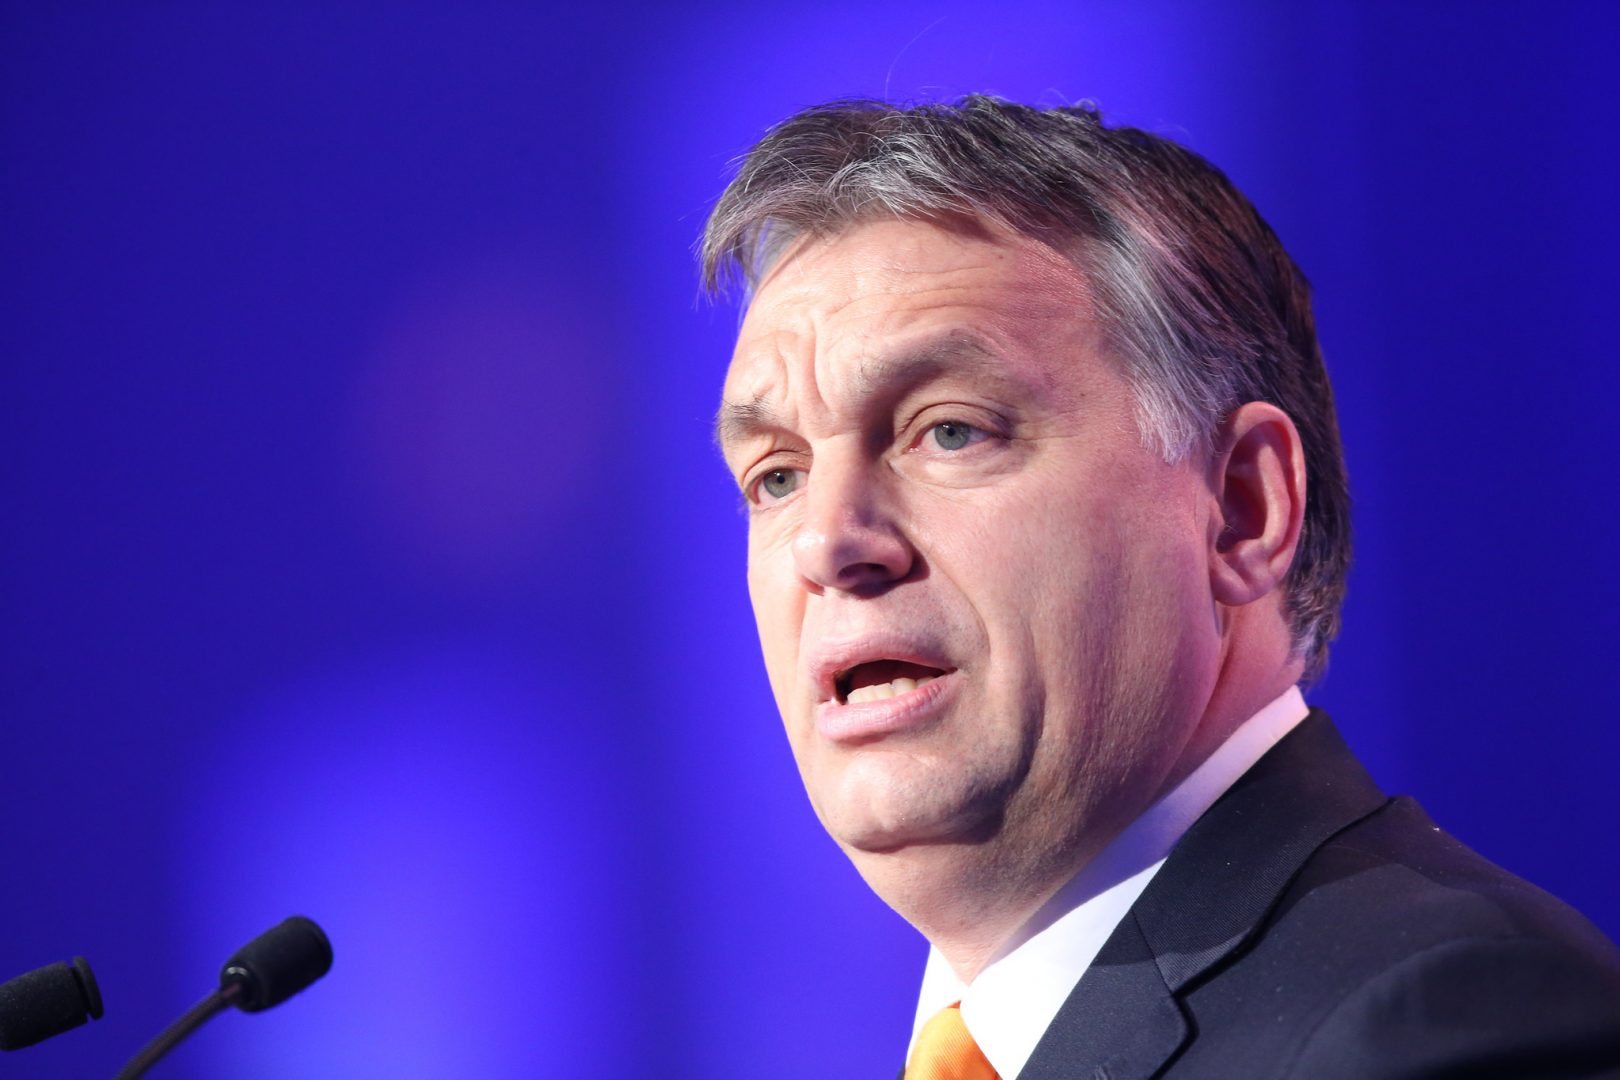 Viktor Orban/fot. European People's Party/Flickr/CC BY 2.0